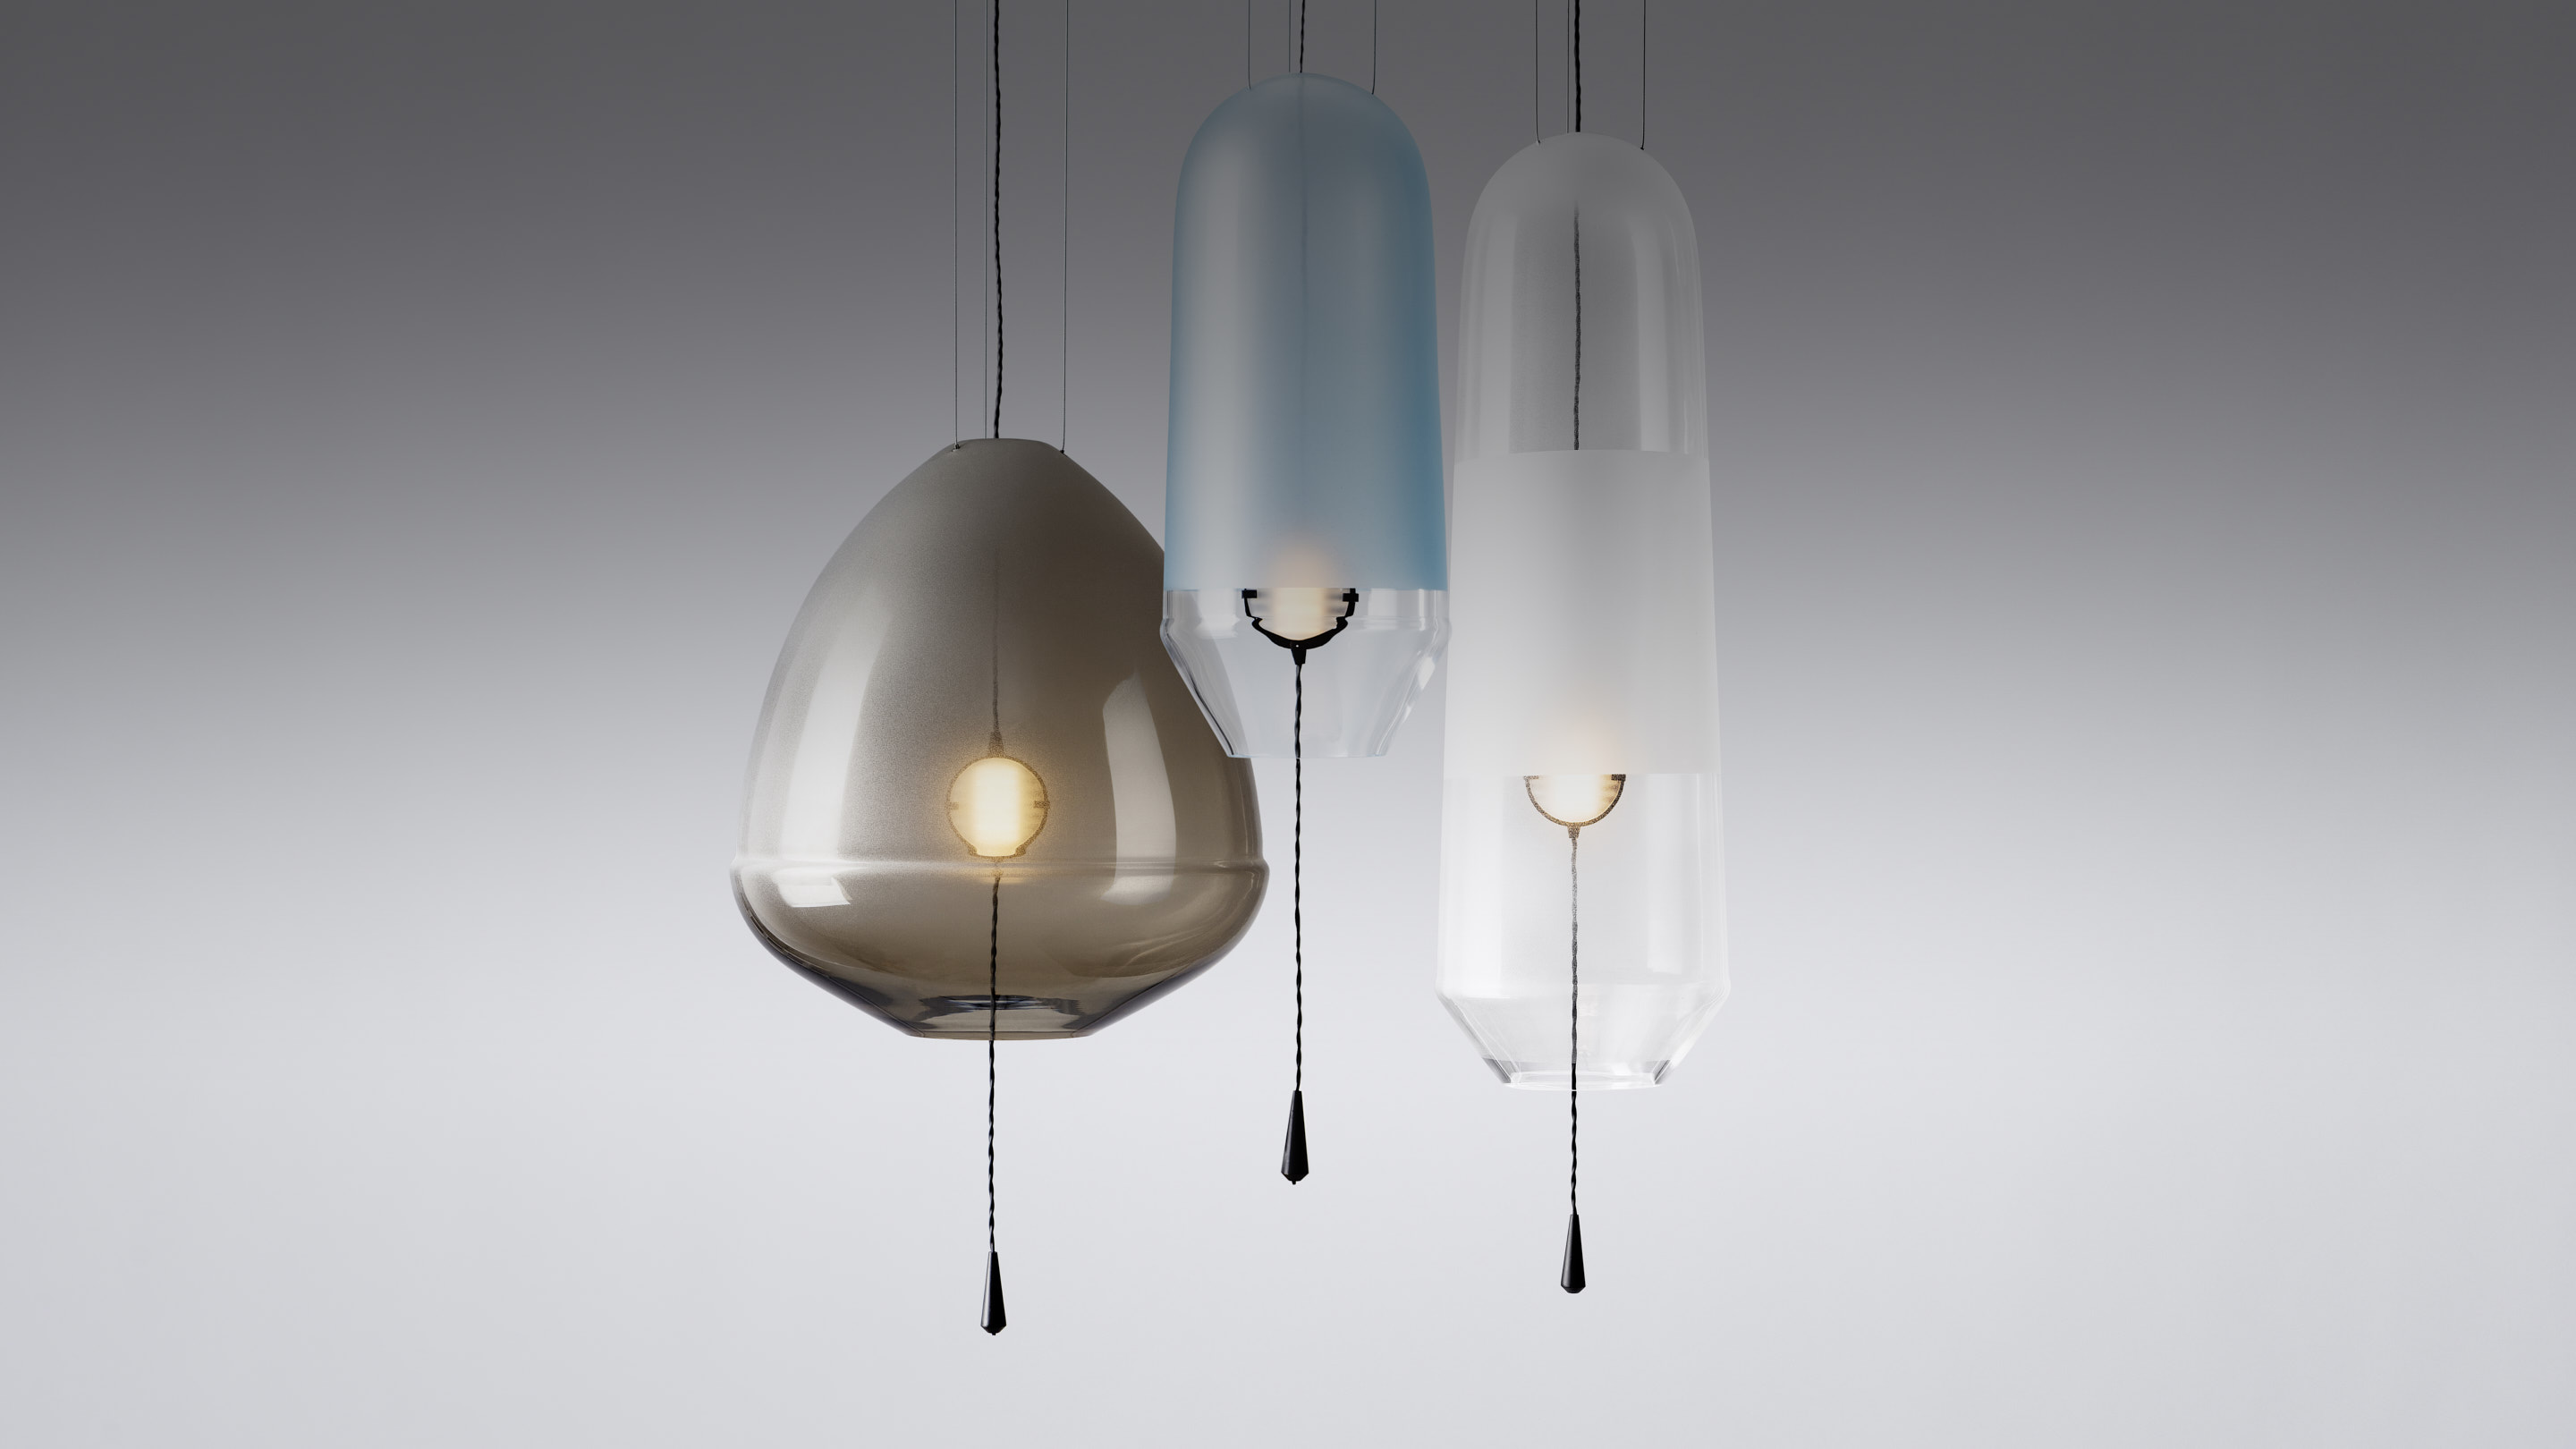 Product - VANTOT - Design Studio - Interior design - Hollands licht - Limpid Lights Click for more information